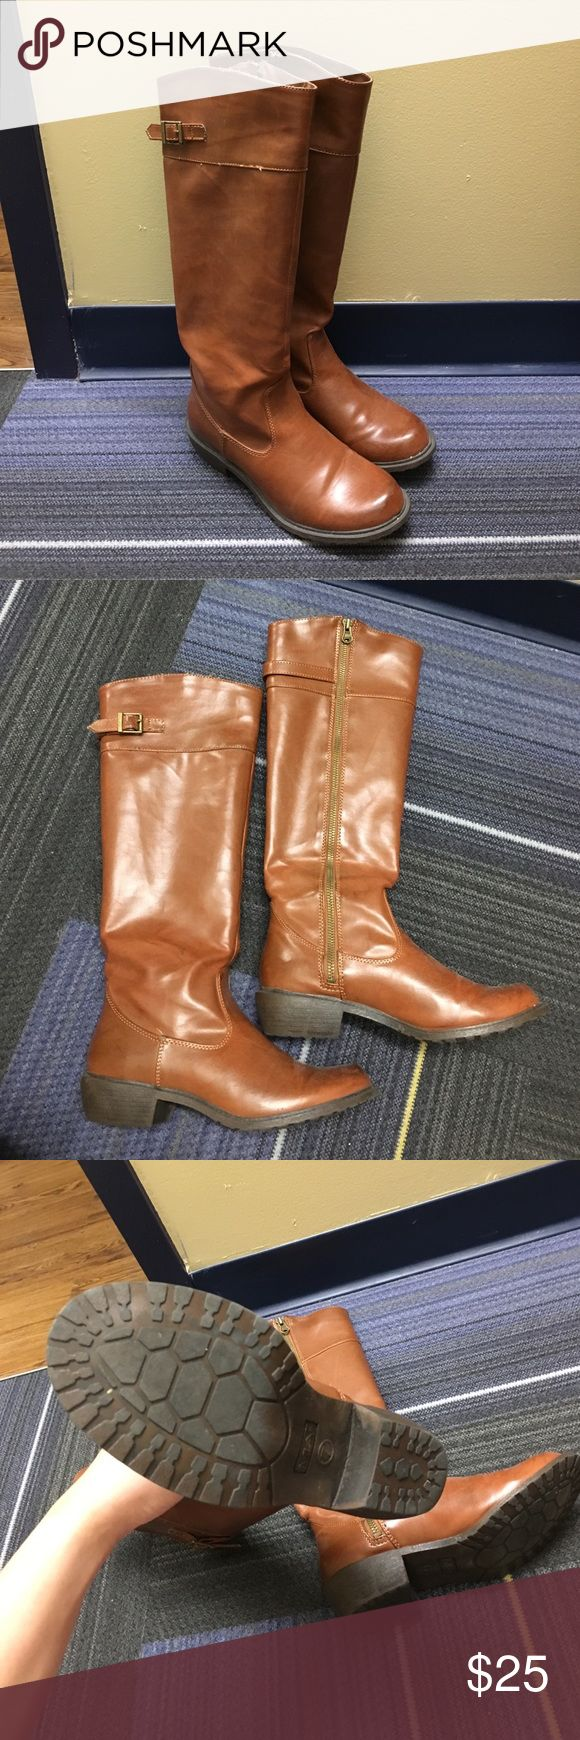 Tall Brown Boots Super cute, faux leather boots! Selling because they're too tight around my calves. Minor scratches from one or two times wear. Please make sure they fit your leg! (Top of boots measure a circumference of around 37cm). MIA Shoes Winter & Rain Boots